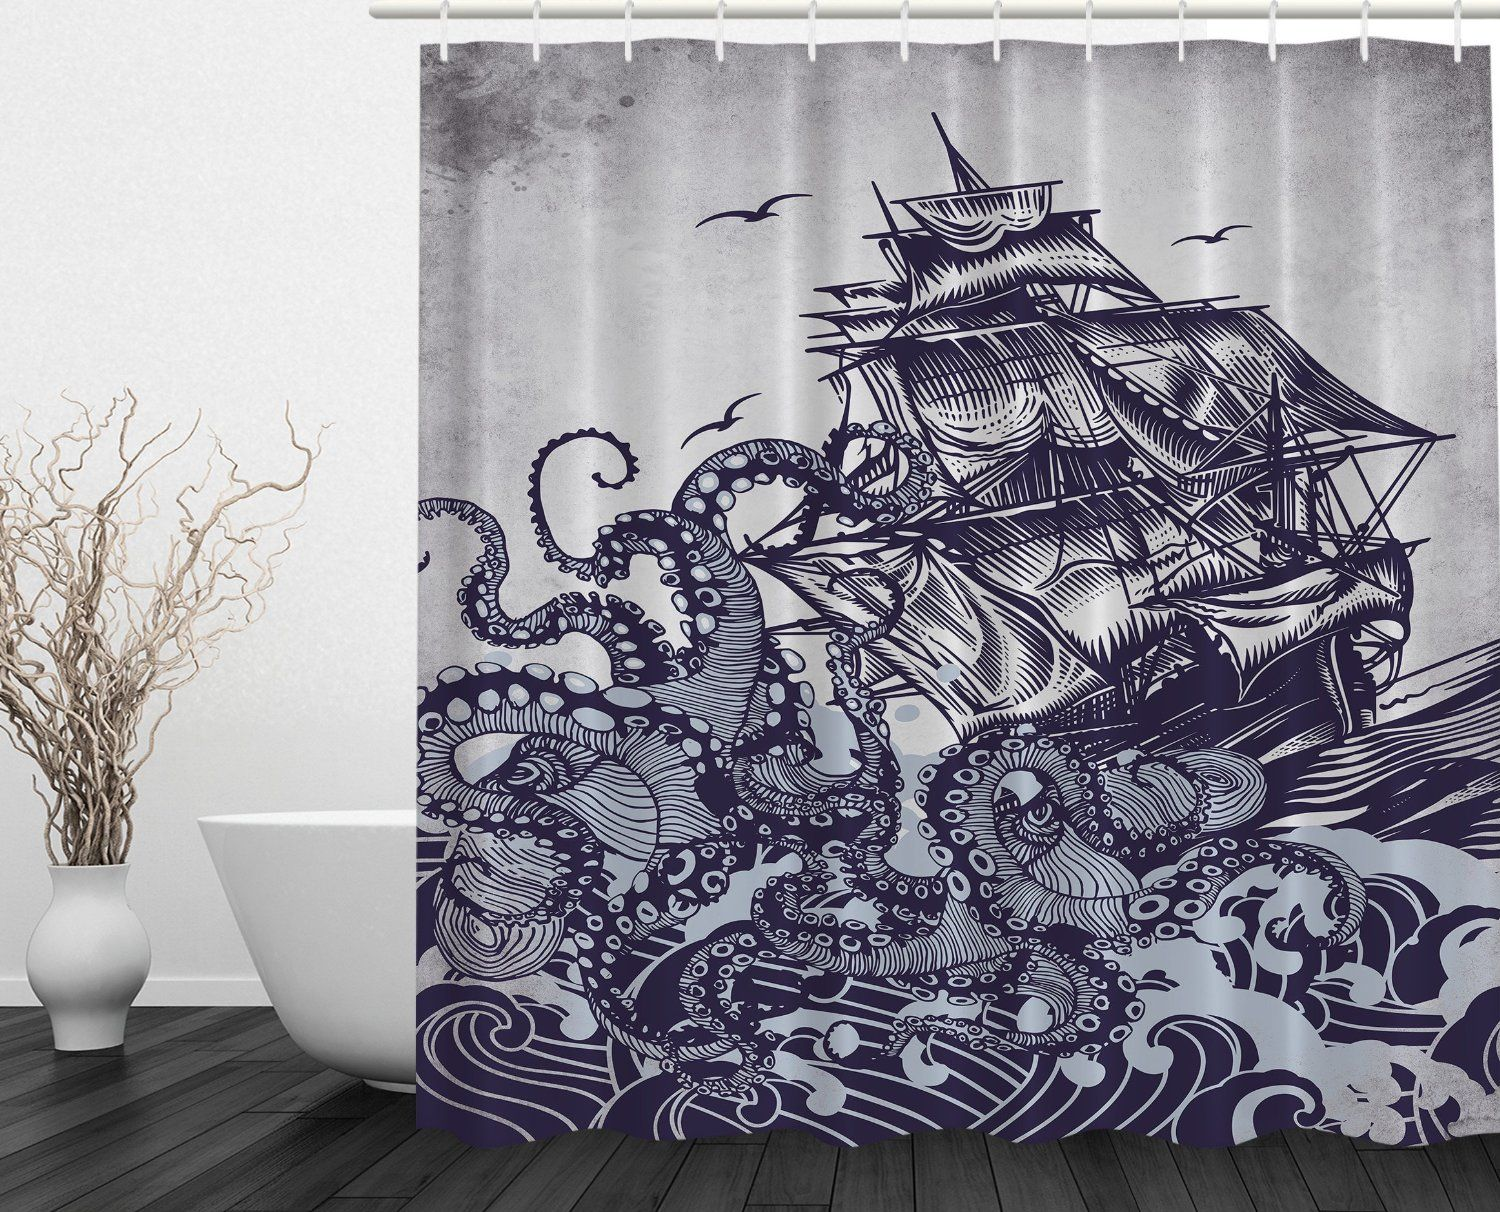 Best Octopus Shower Curtain for your Bathroom | European style ...